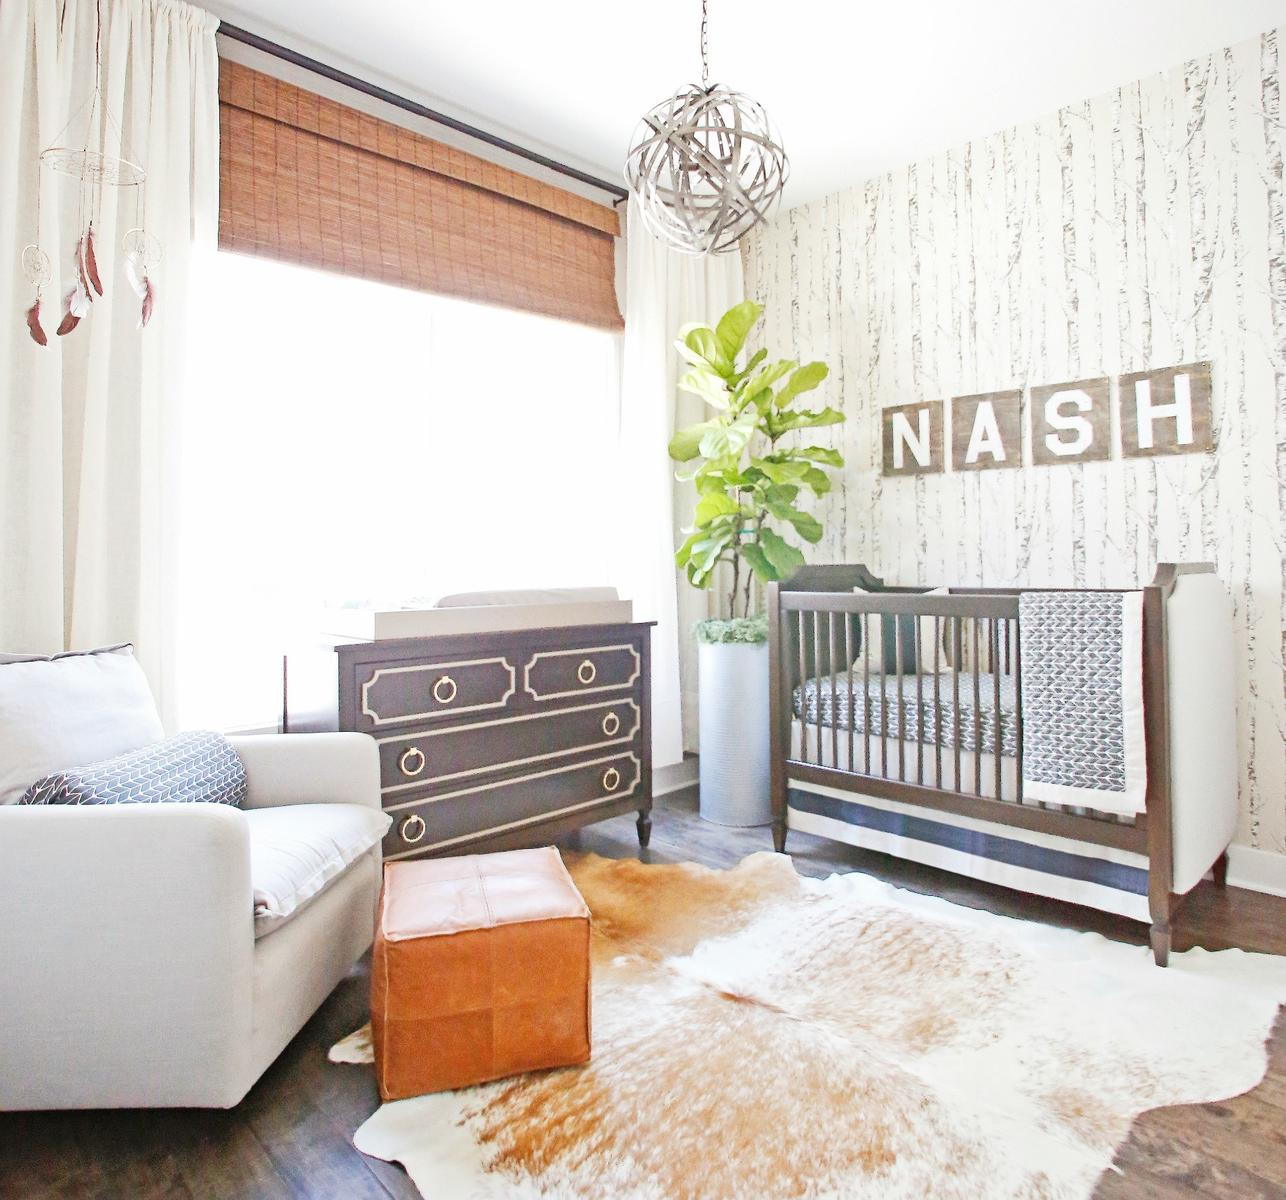 nursery decor trends for 2016 - Nursery Design Ideas